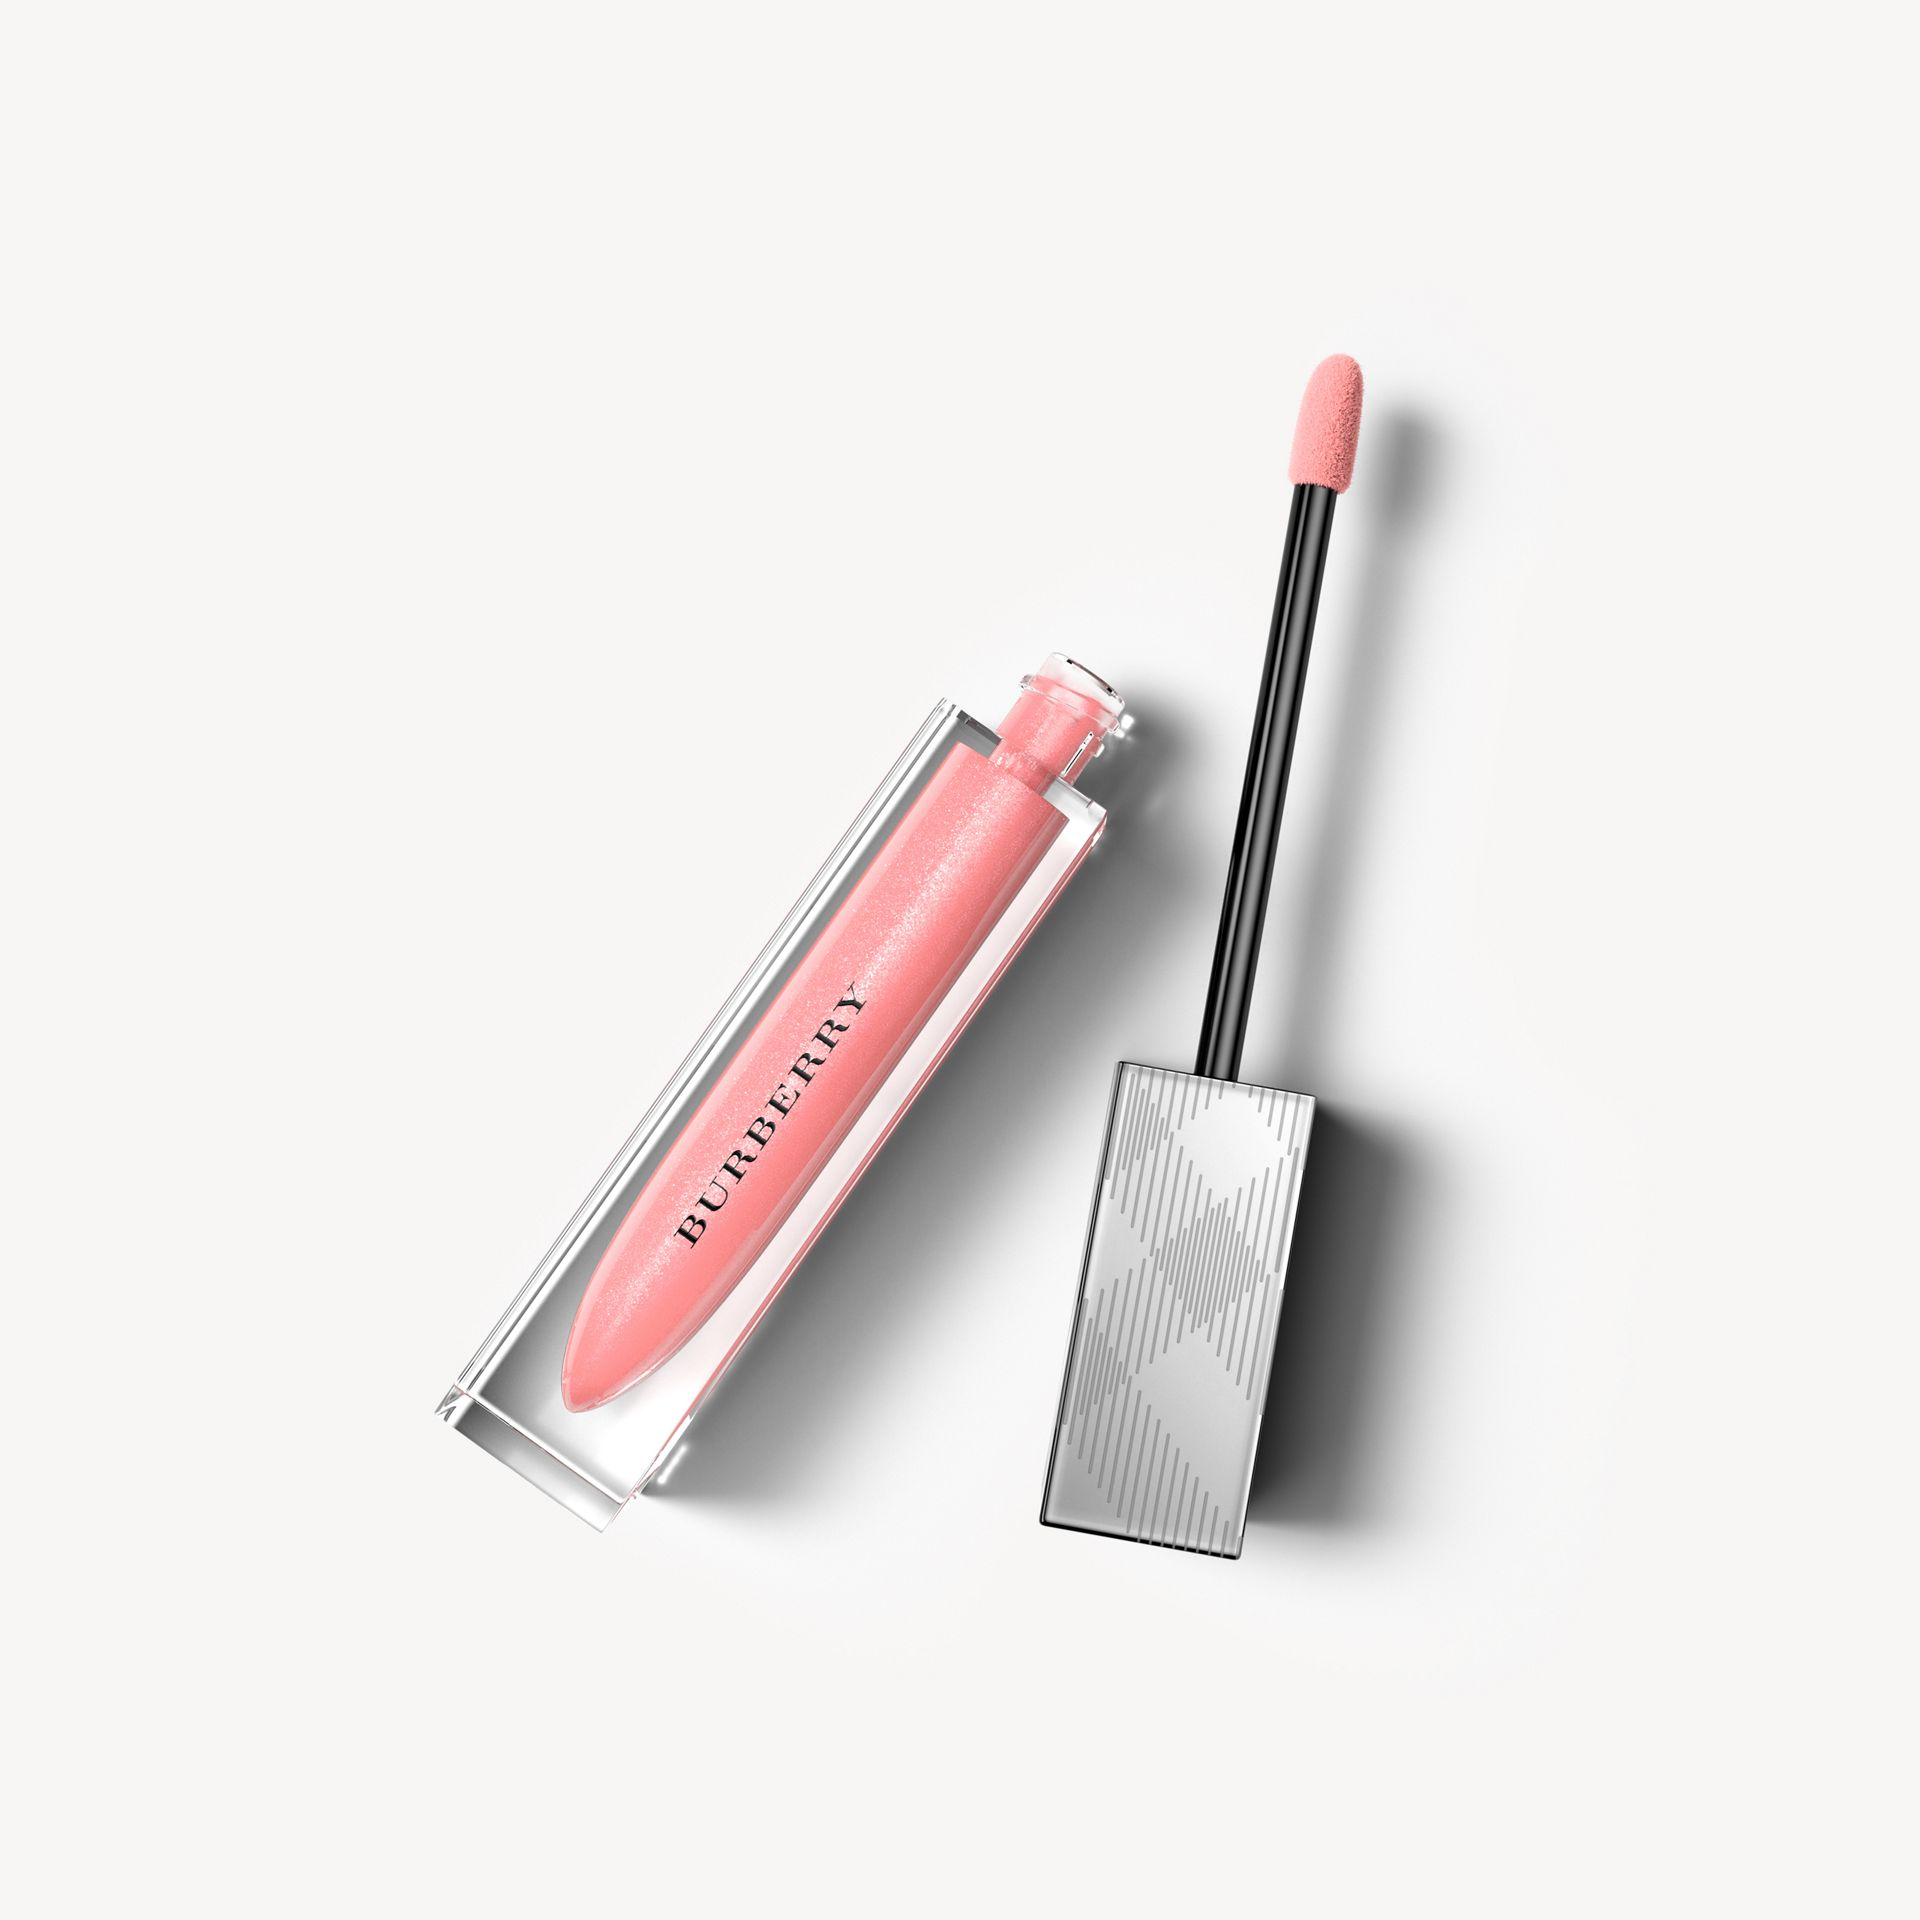 Nude pink no.25 Burberry Kisses Gloss – Nude Pink No.25 - Galerie-Bild 1